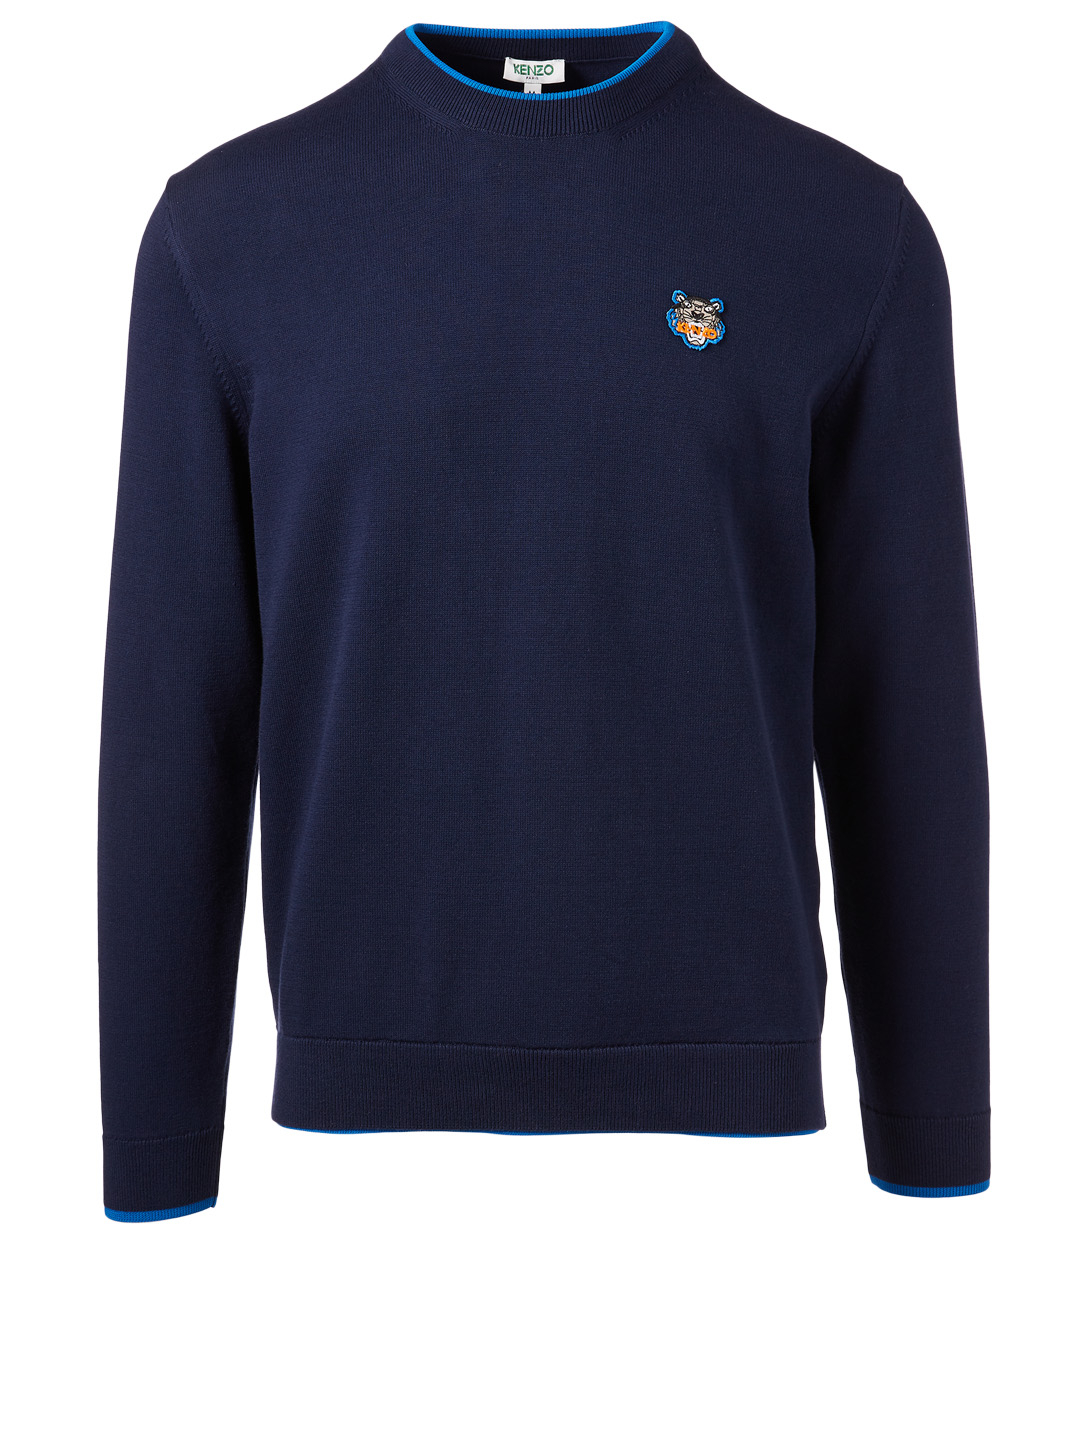 KENZO Tiger Crest Sweater Men's Blue